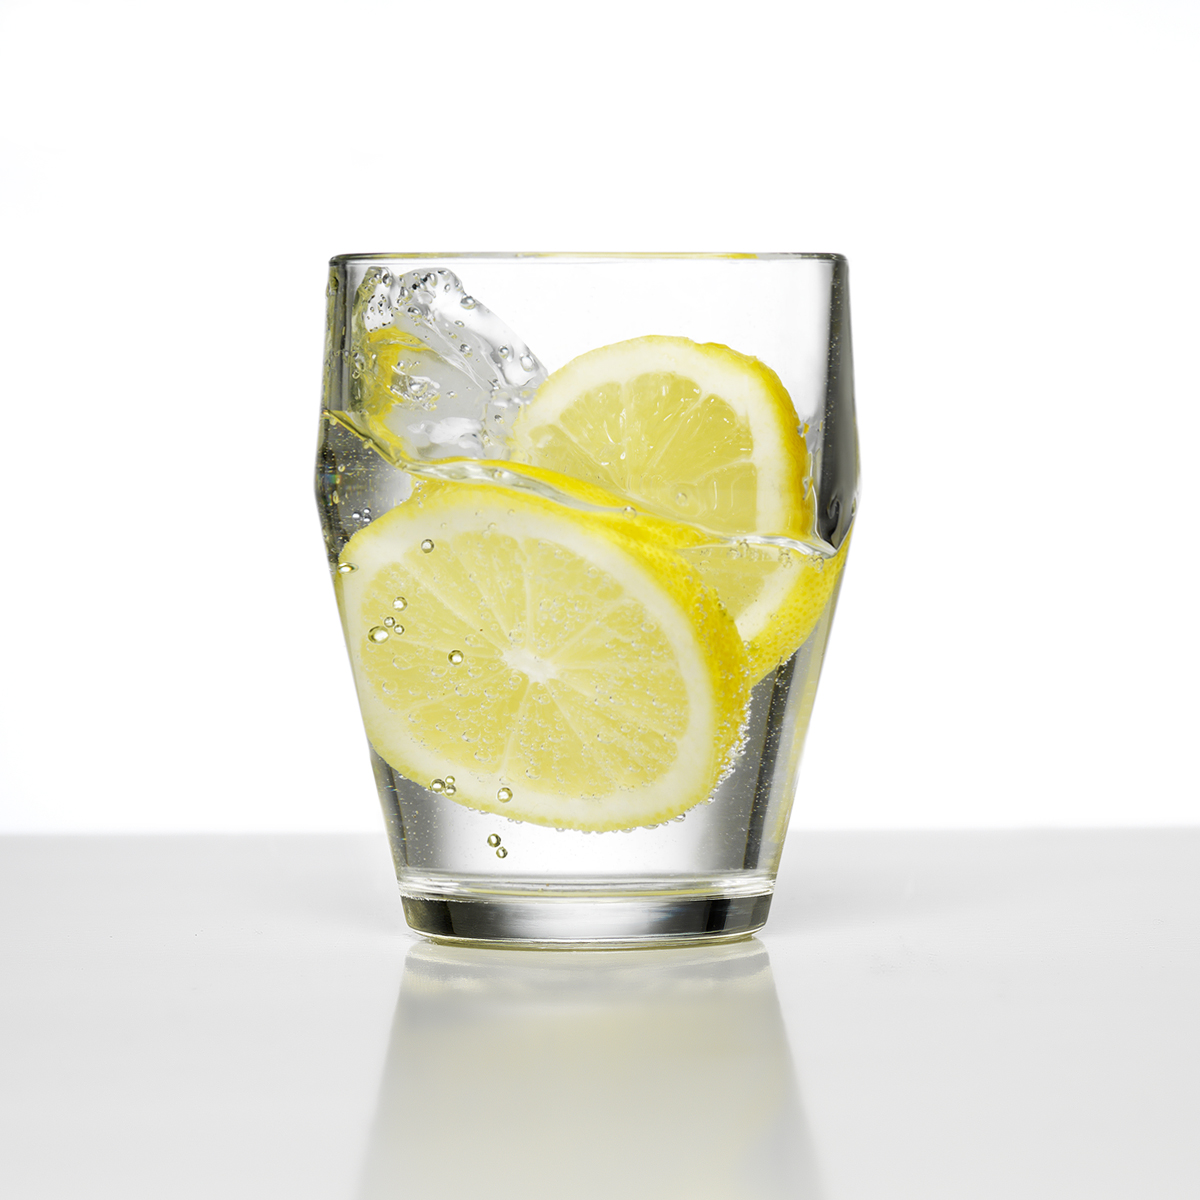 lose-up-to-5-pounds-a-week-just-by-drinking-this-amazing-drink.jpg